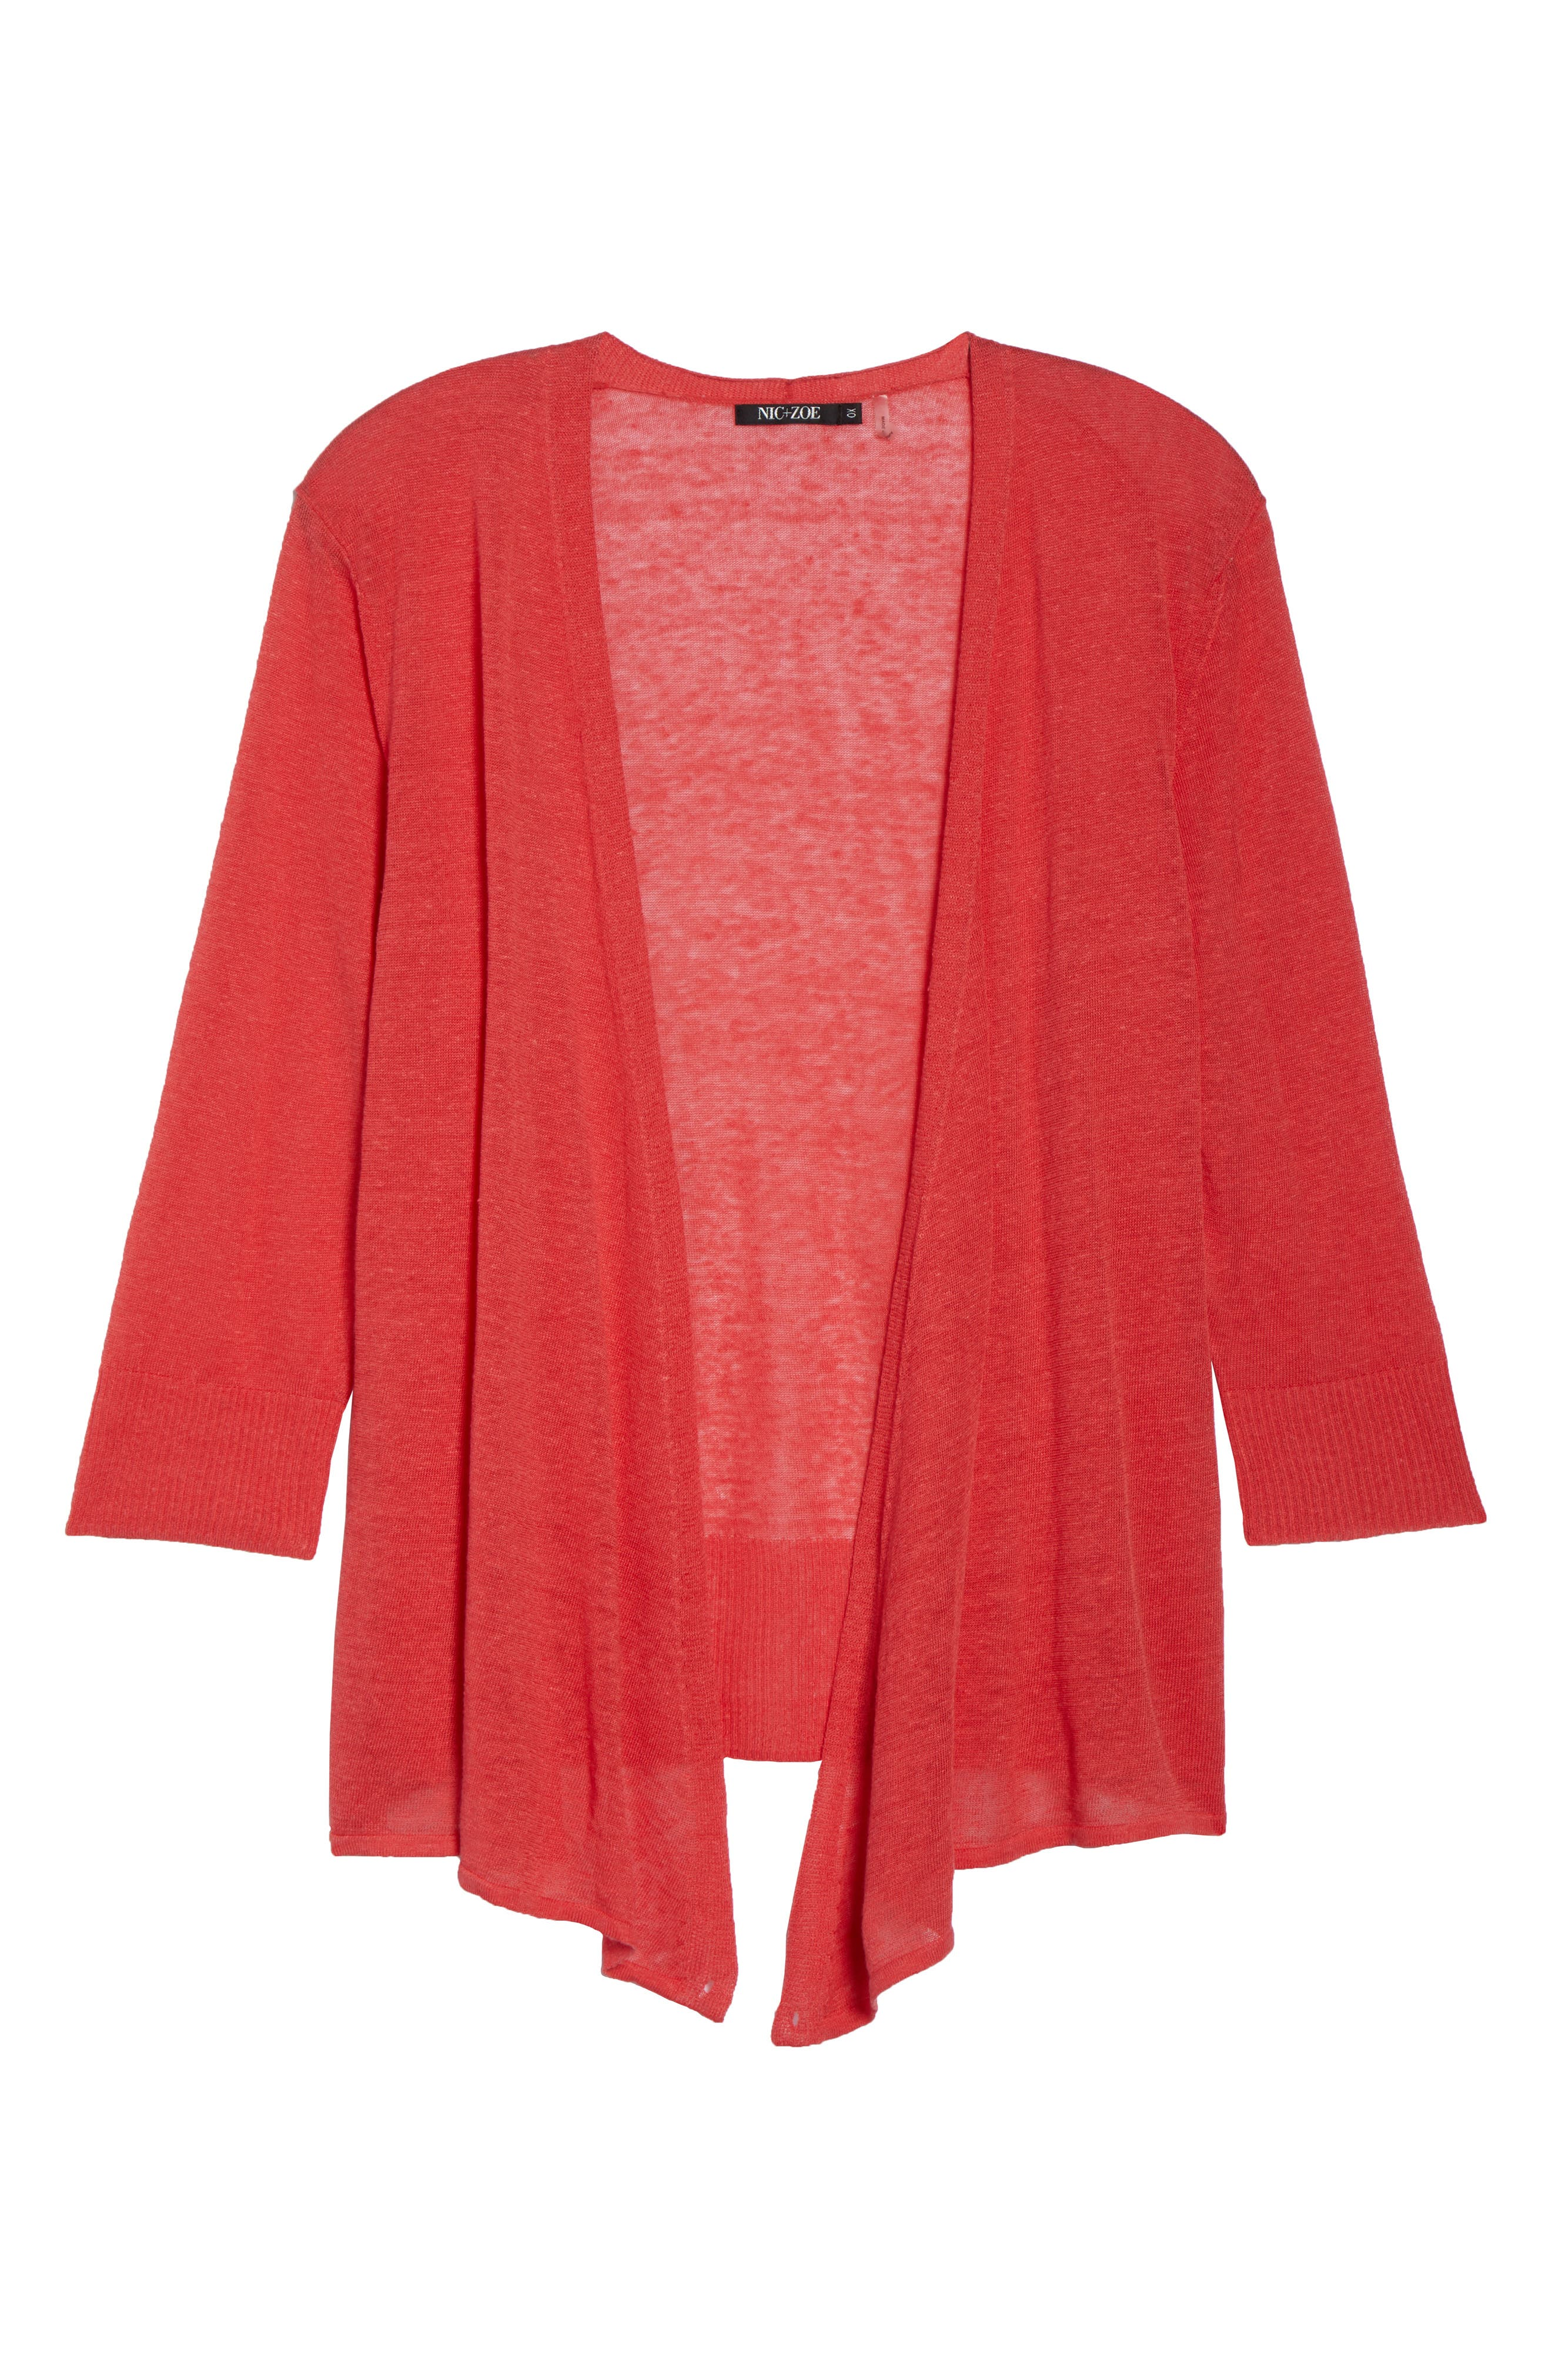 4-Way Convertible Three Quarter Sleeve Cardigan,                             Alternate thumbnail 8, color,                             Spiced Rose